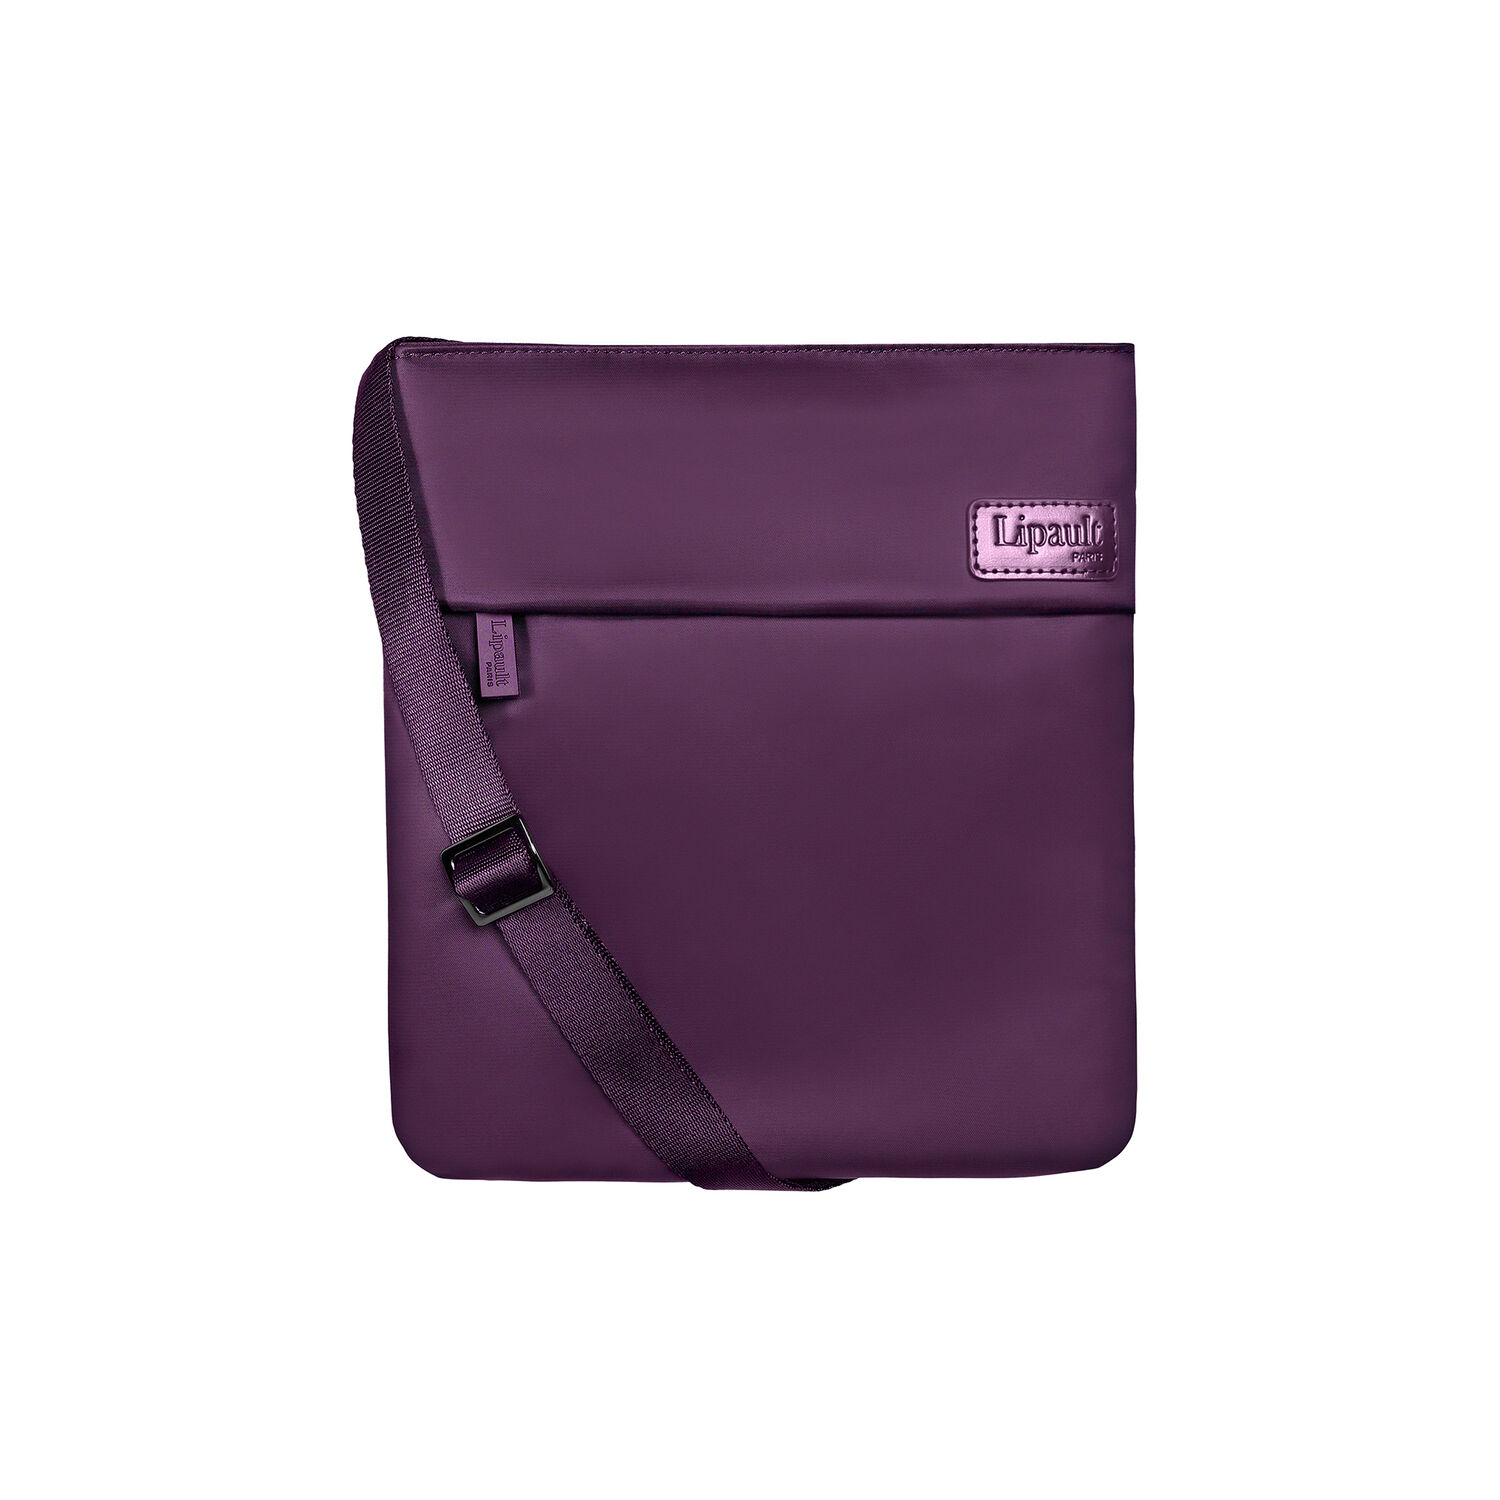 Lipault City Plume Crossover Bag M in the color Purple. 762f19ca44130